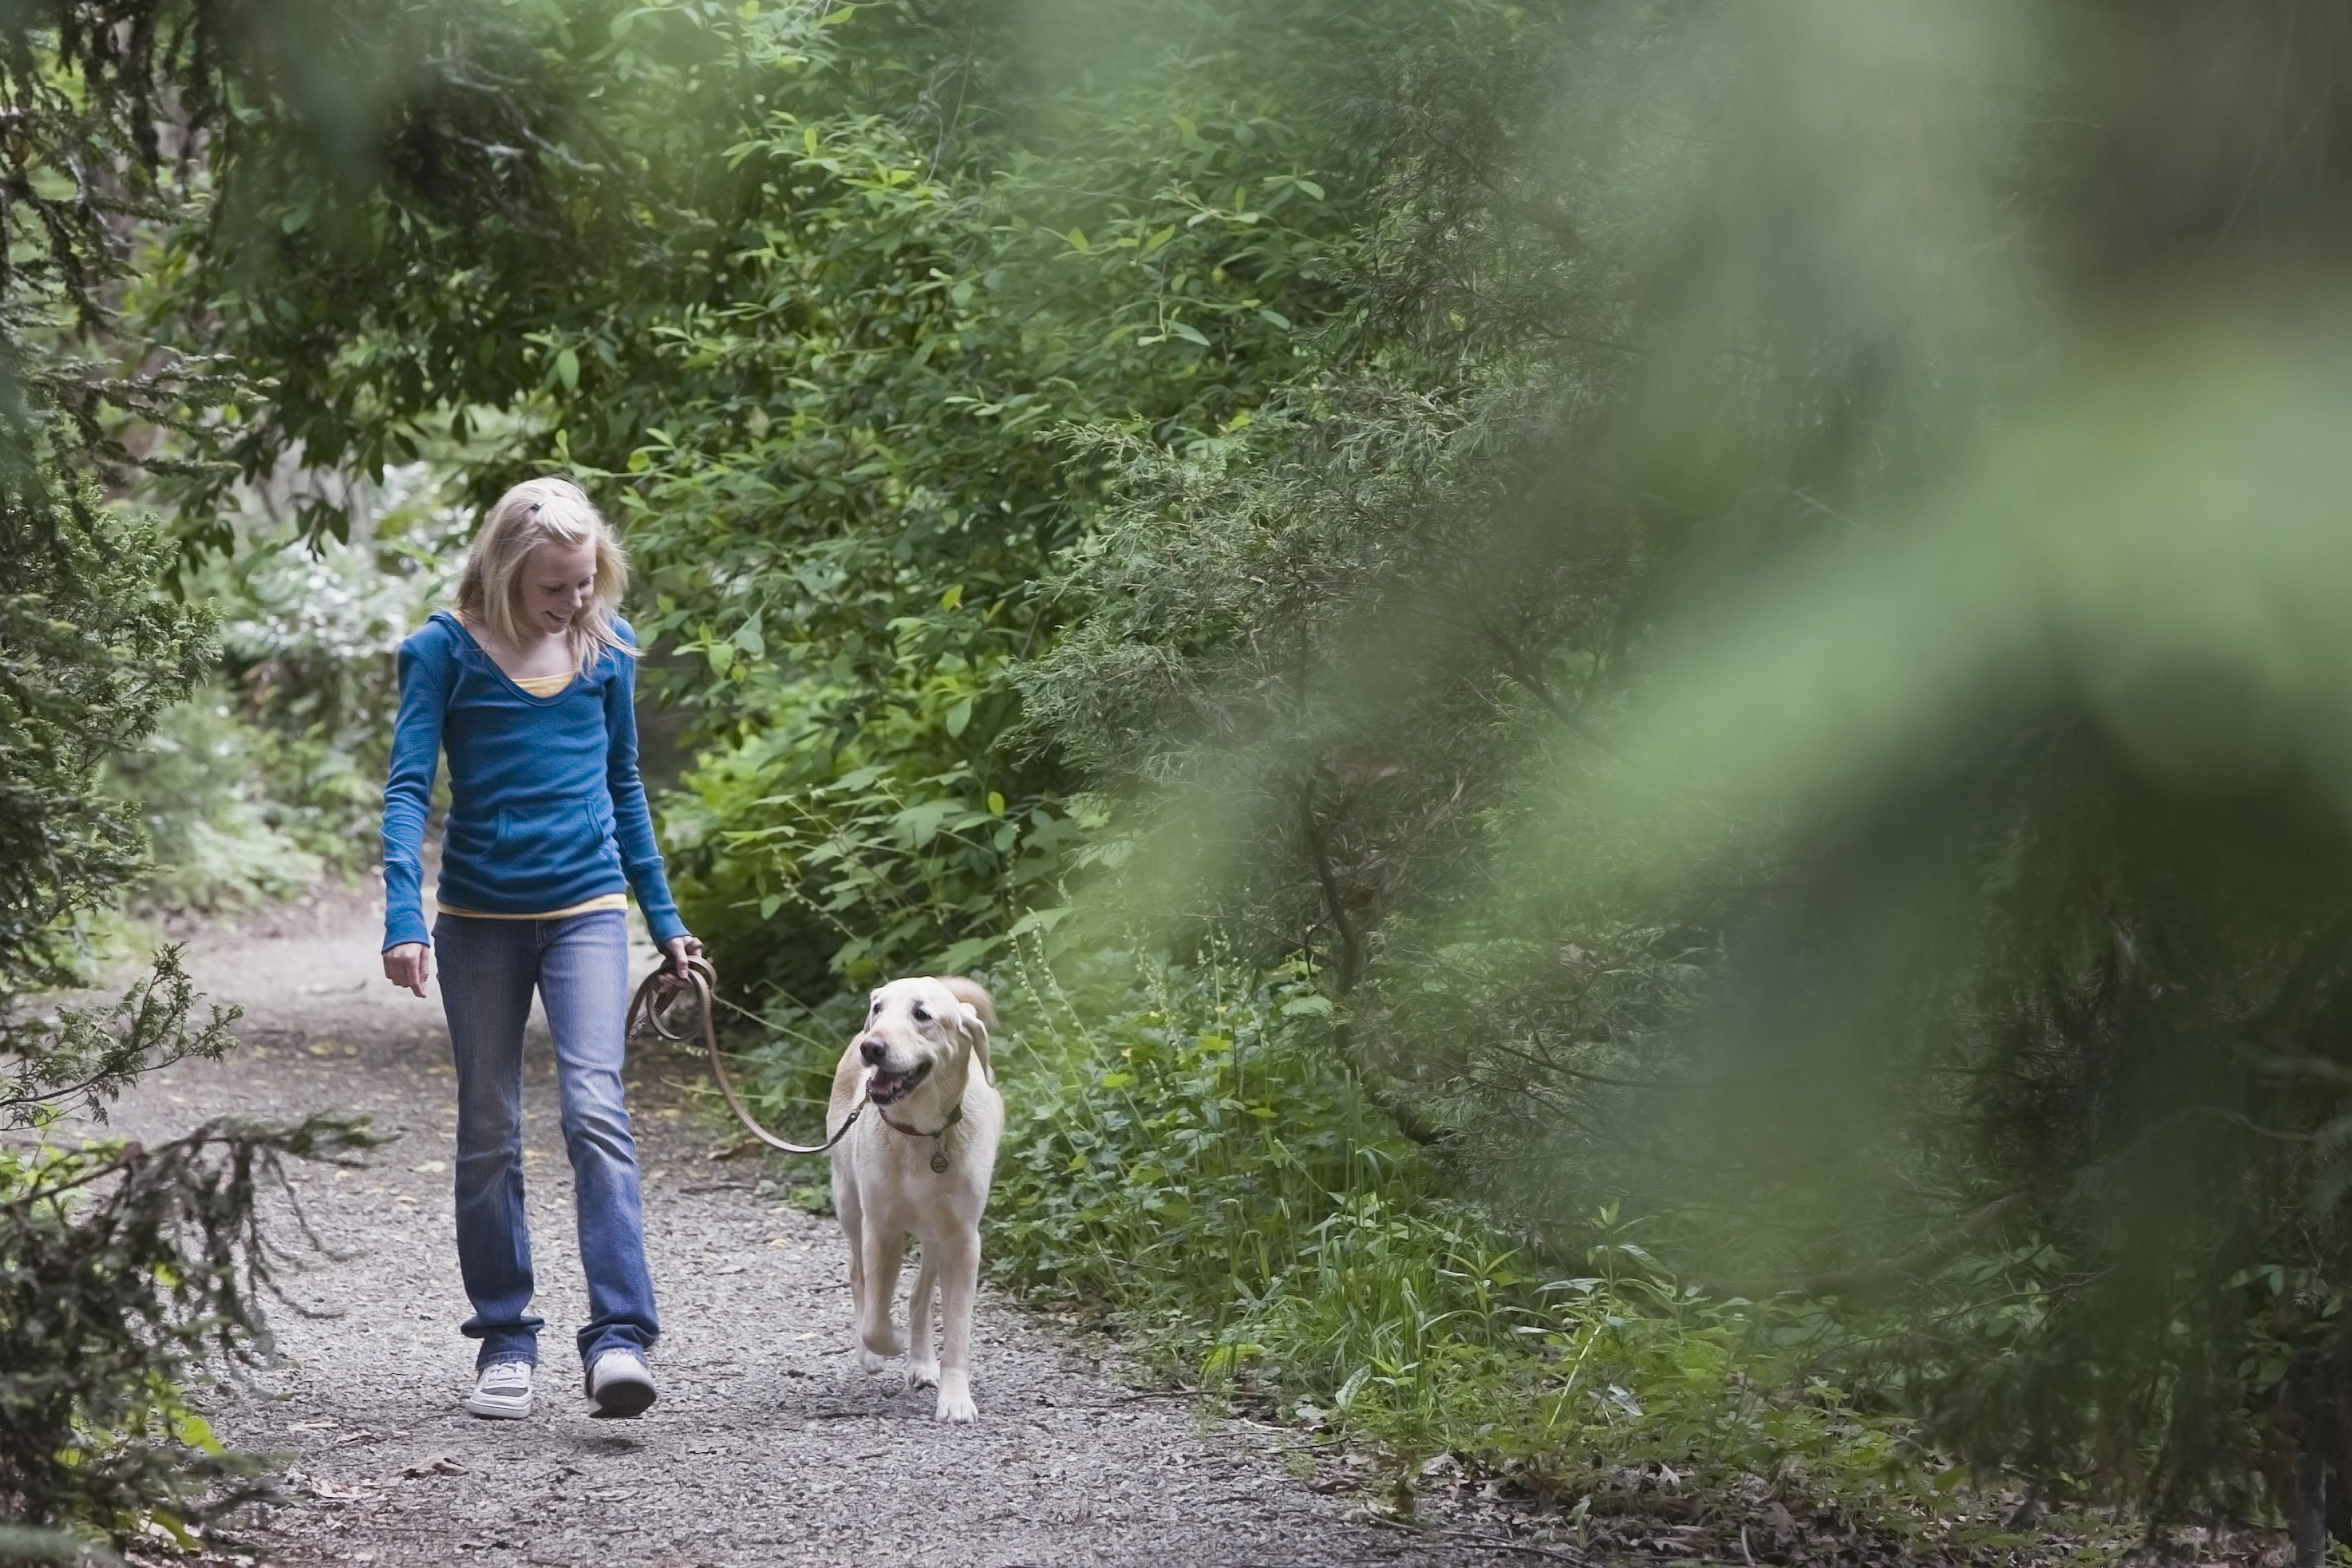 Girl walking dog on forest path